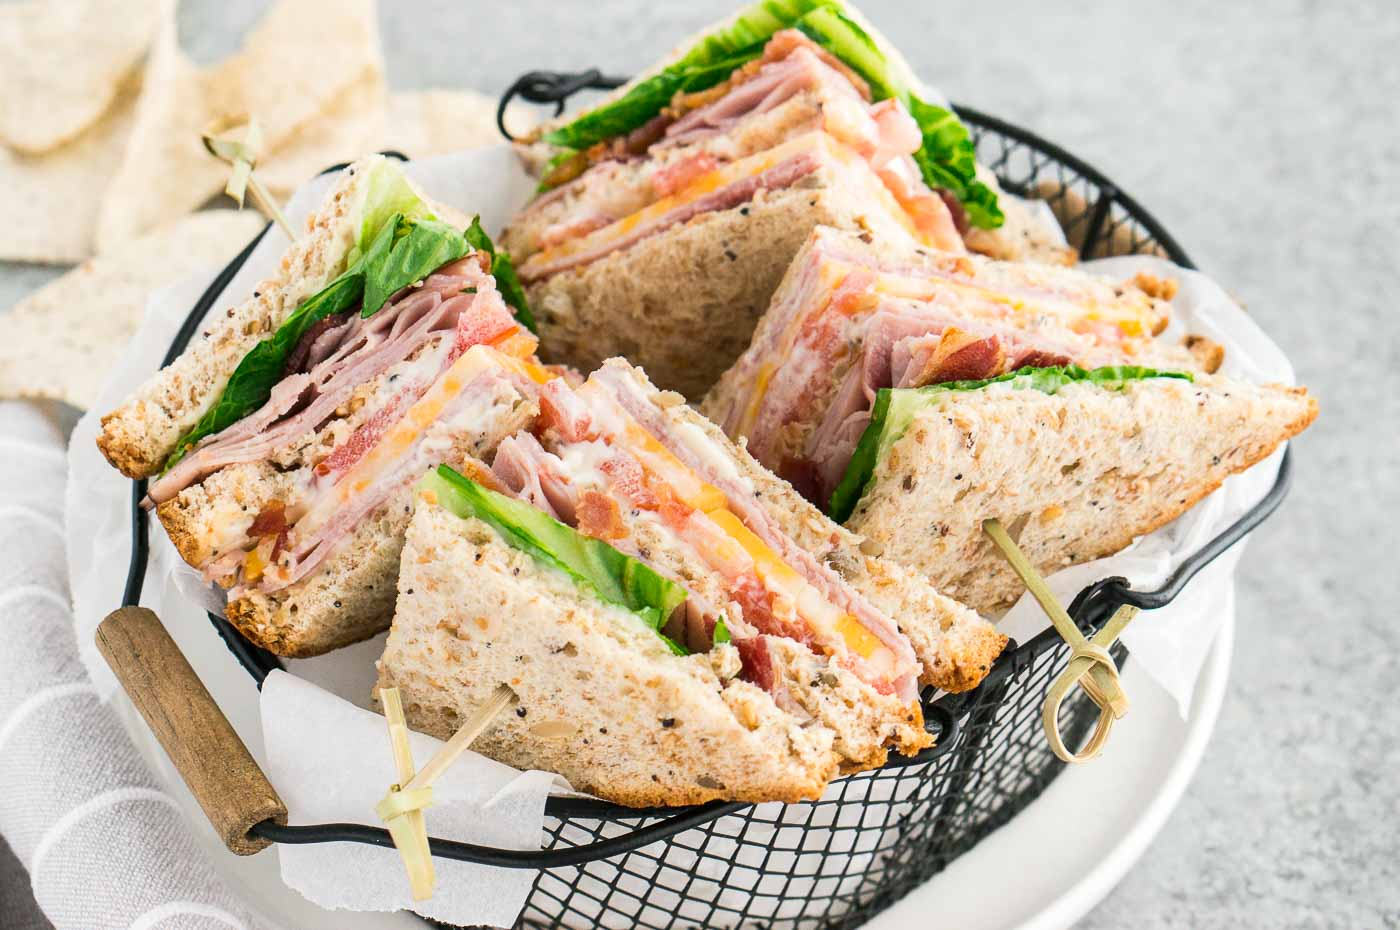 close up image of the best clubhouse sandwiches in a basket